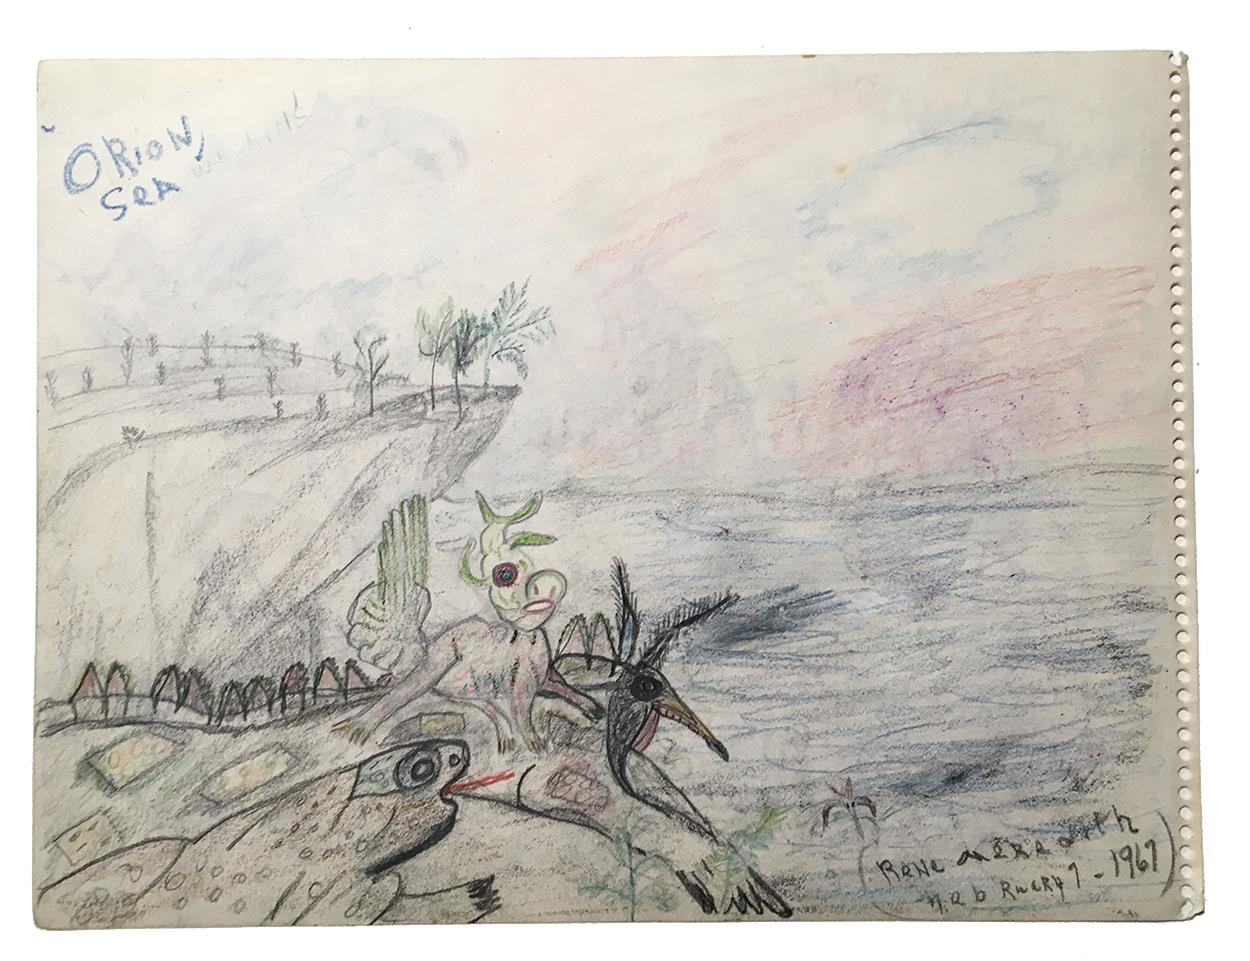 """Rene Meredith (two-sided, side B) - """"Orion, Sea"""" 12 x 9 in, pencil & crayon"""